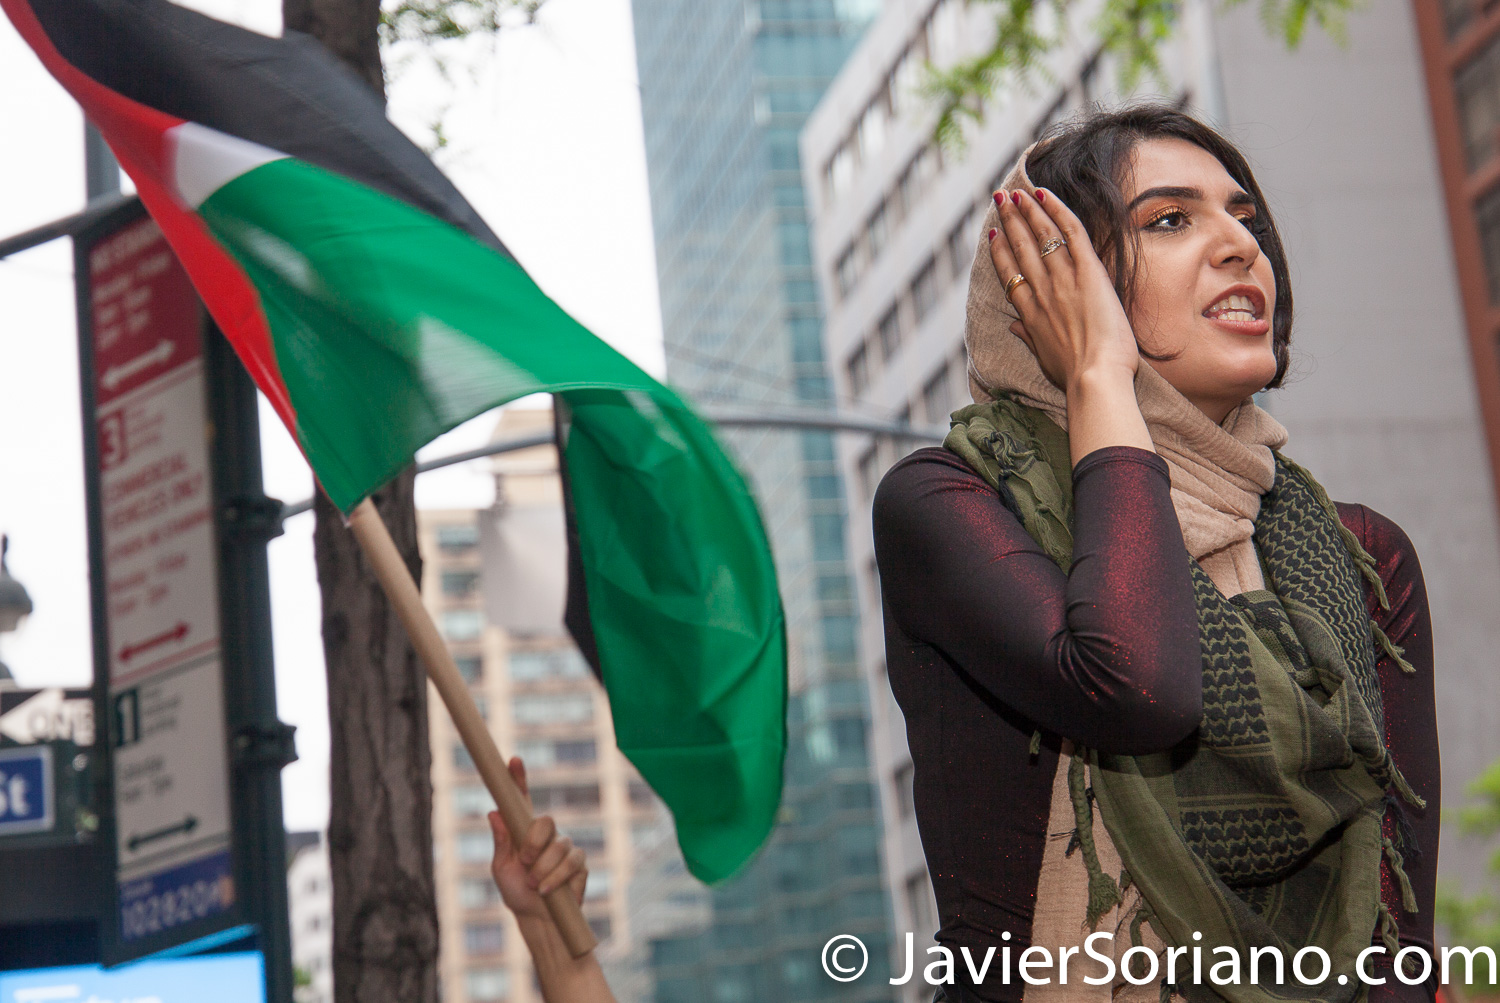 5/18/2018. New York City - Supporters of Palestine in front of the Israeli consulate. Photo by Javier Soriano/www.JavierSoriano.com